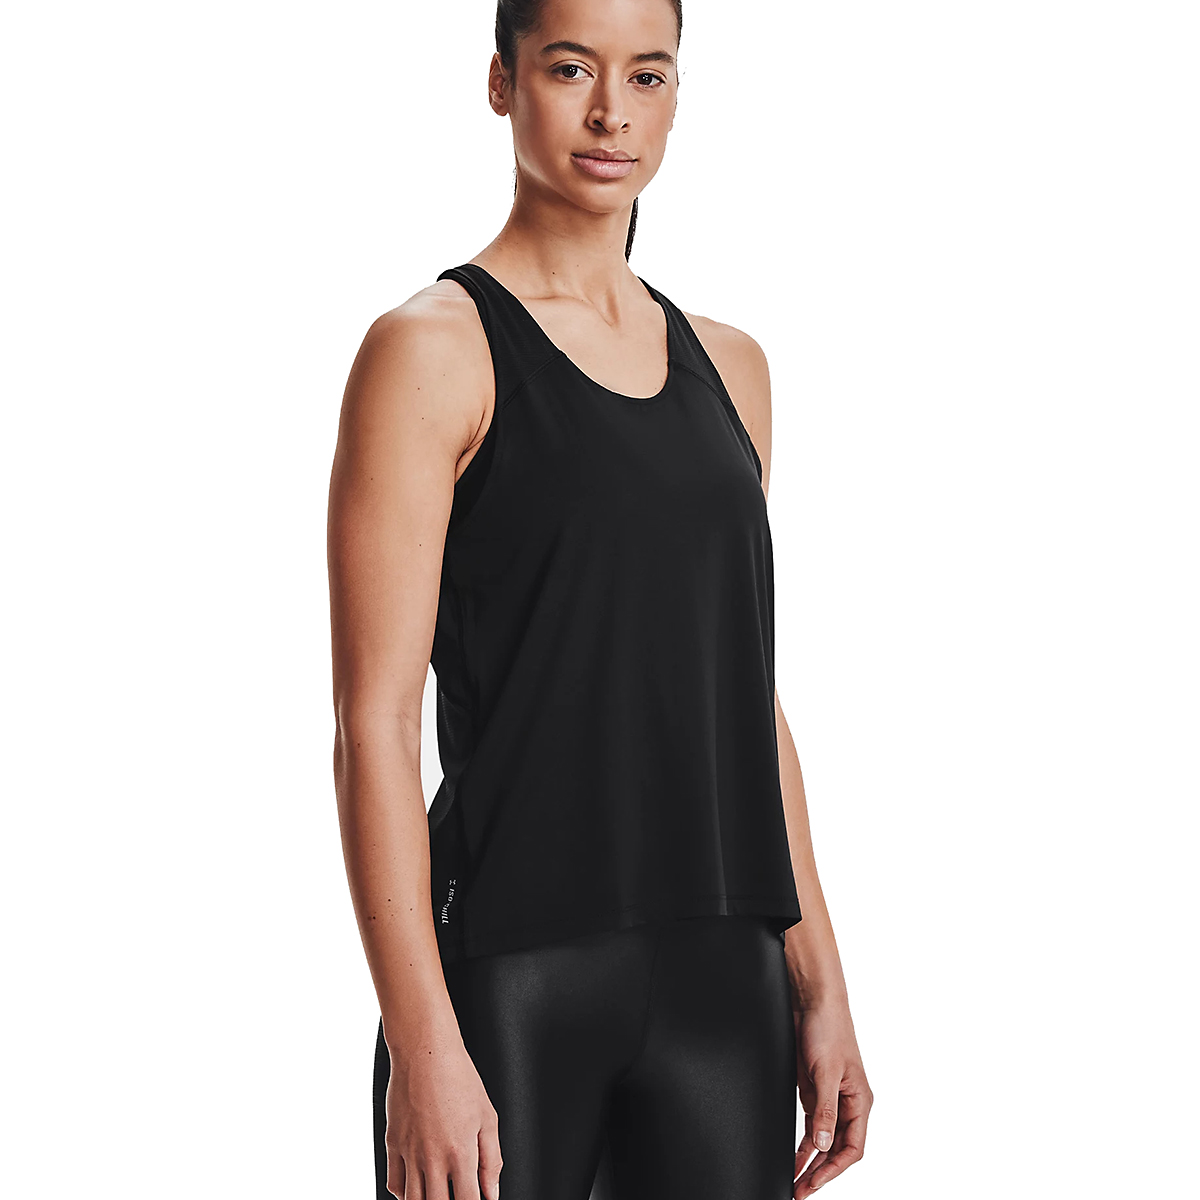 Women's Under Armour Iso-Chill Run 200 Tank - Color: Black - Size: XS, Black, large, image 3